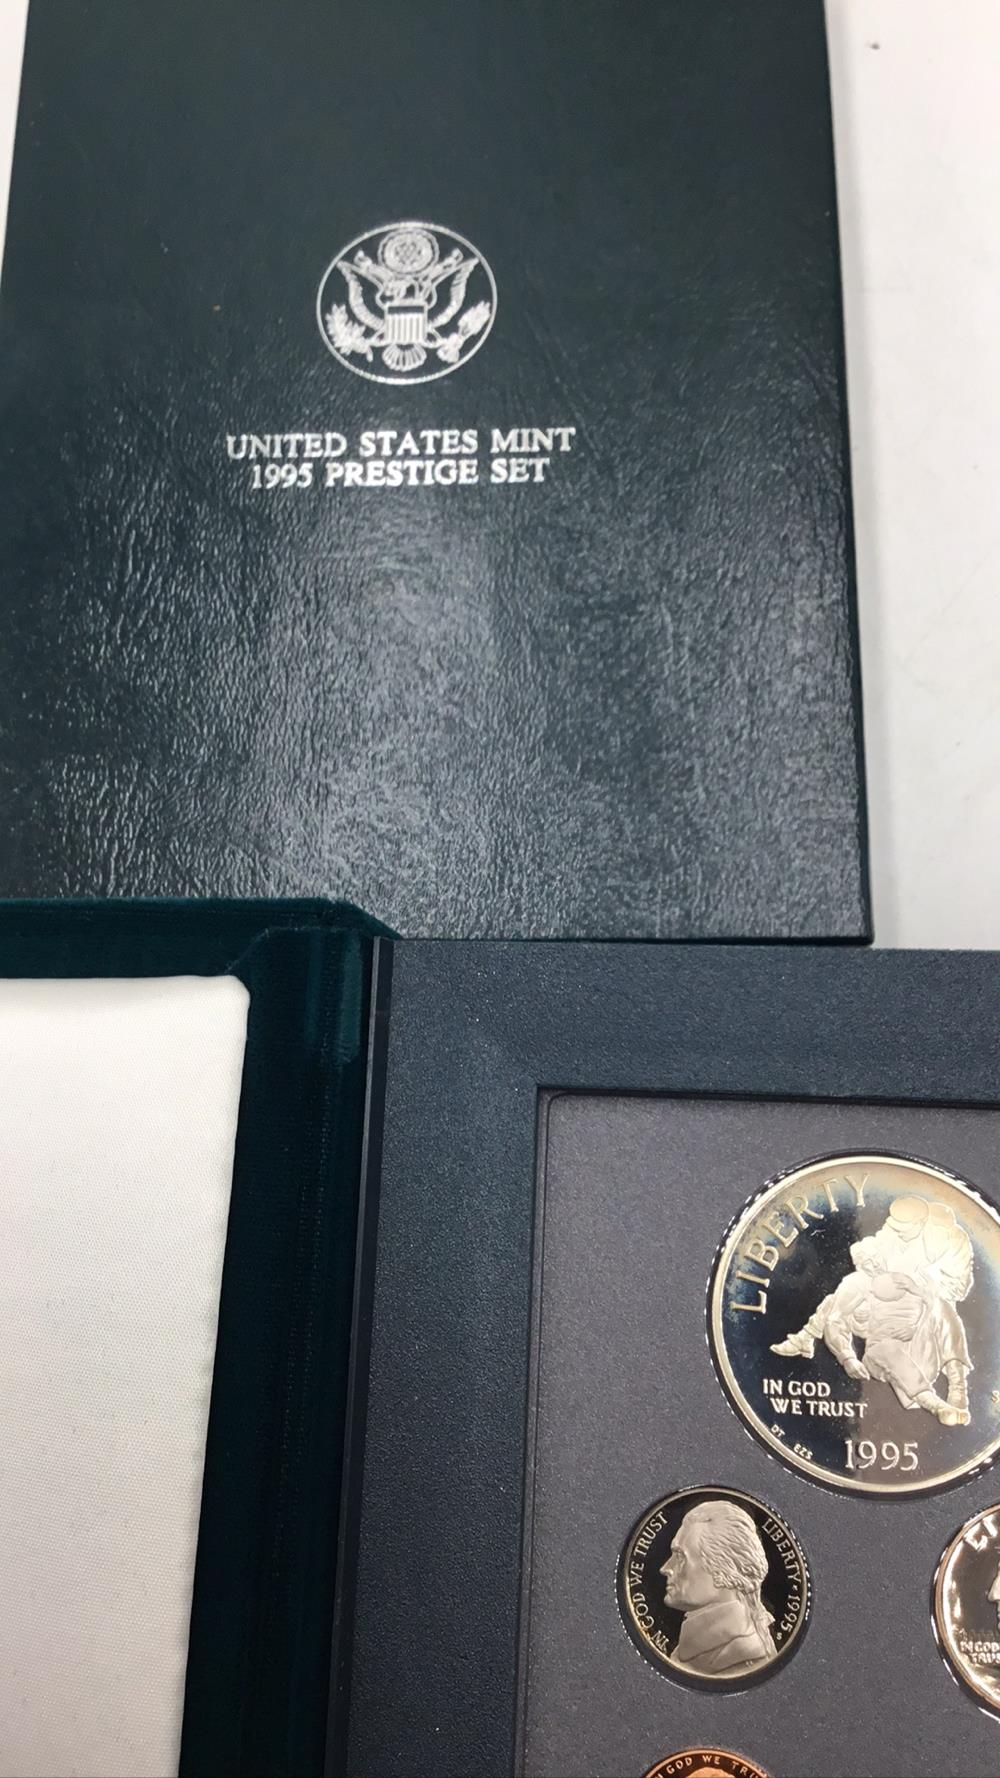 Lot 124: United states mint Prestige set, silver war